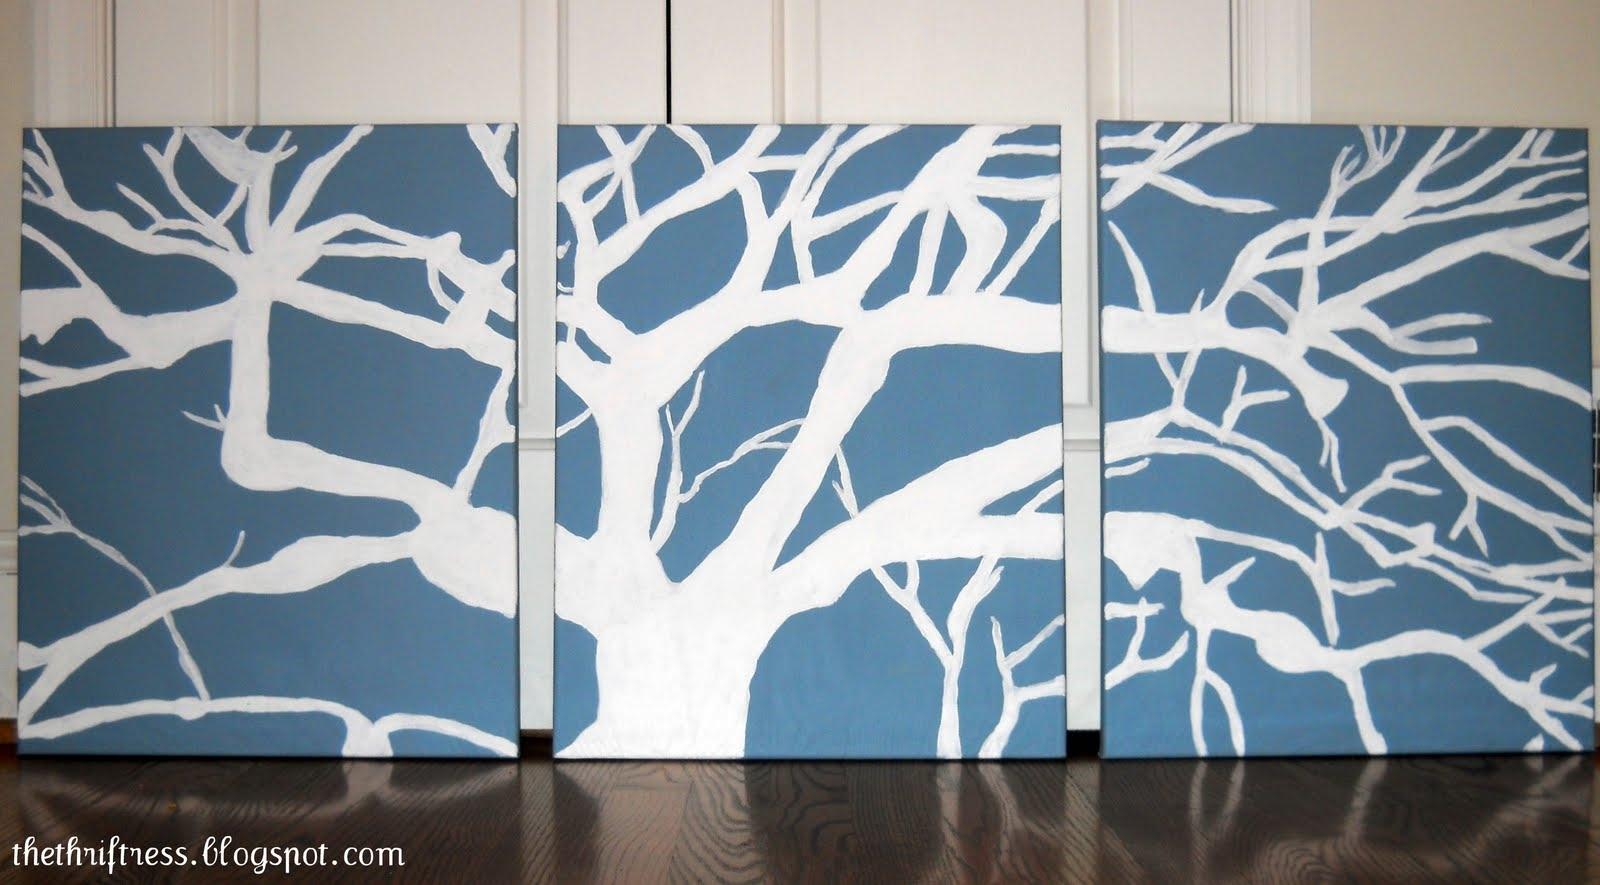 Diy Wall Art Stencils Paint Fabric – Dma Homes | #37854 For Most Up To Date Blue Fabric Wall Art (View 9 of 15)